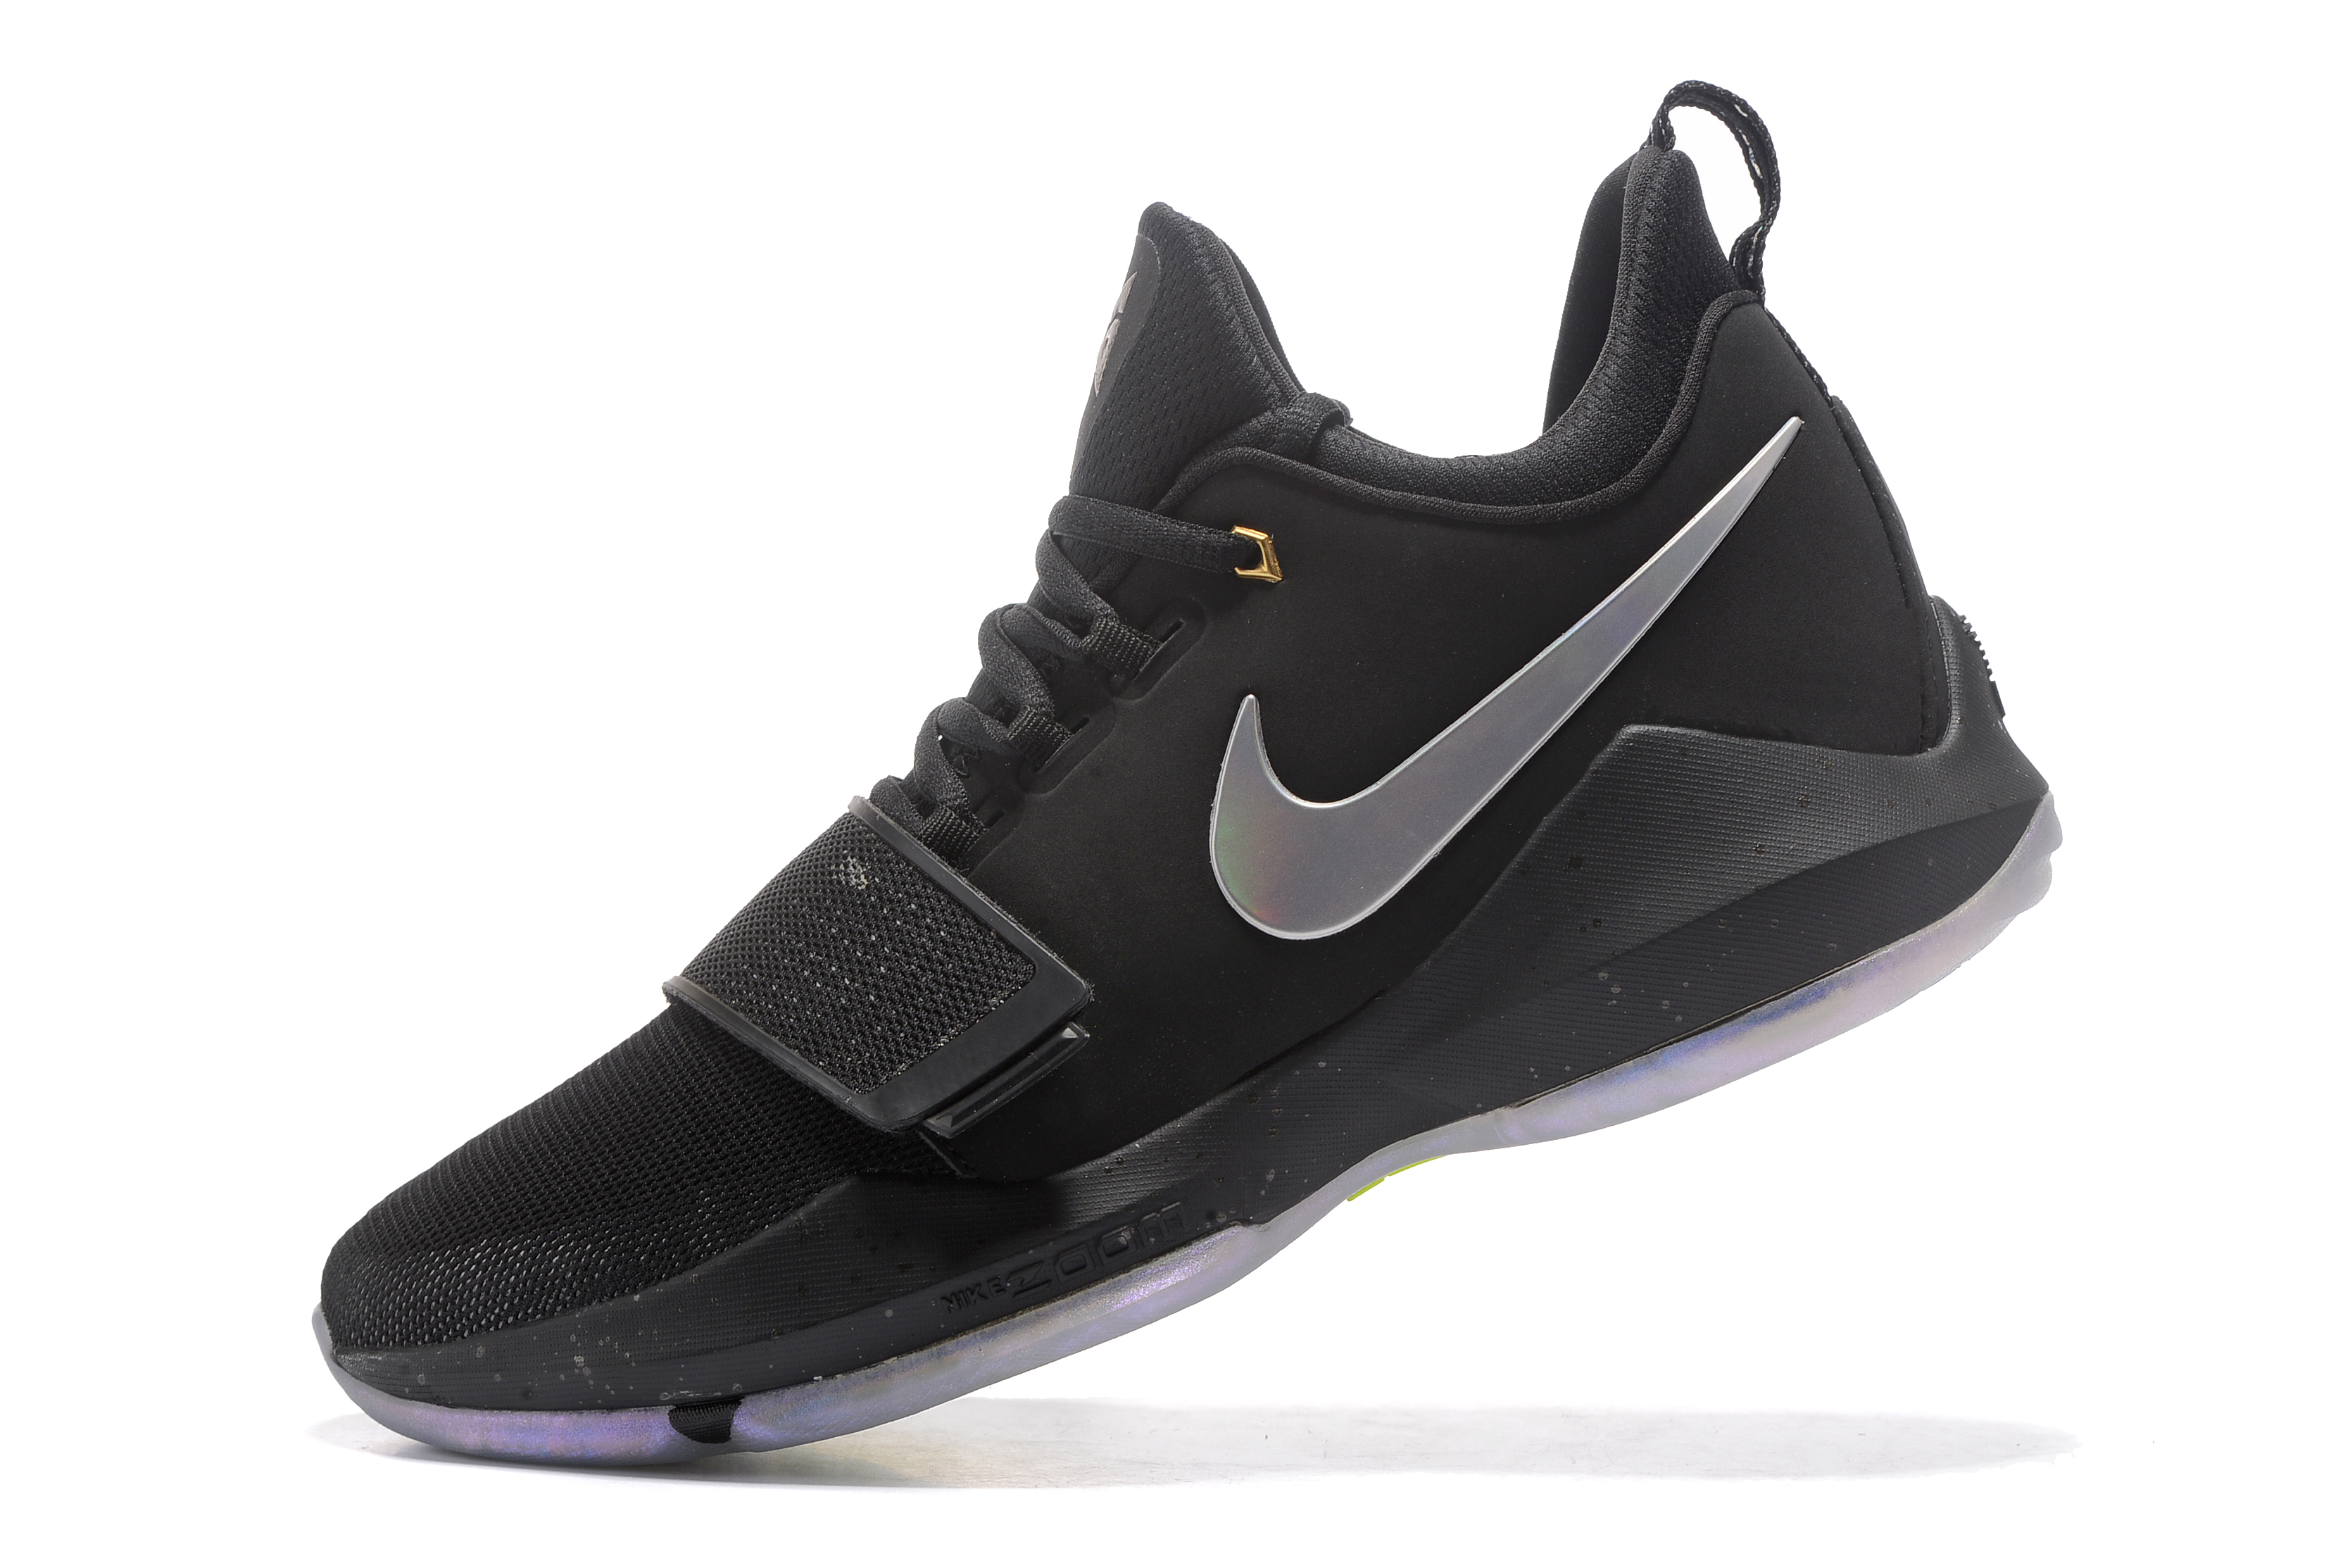 Paul George 1 Black Colors Shoes On Sale